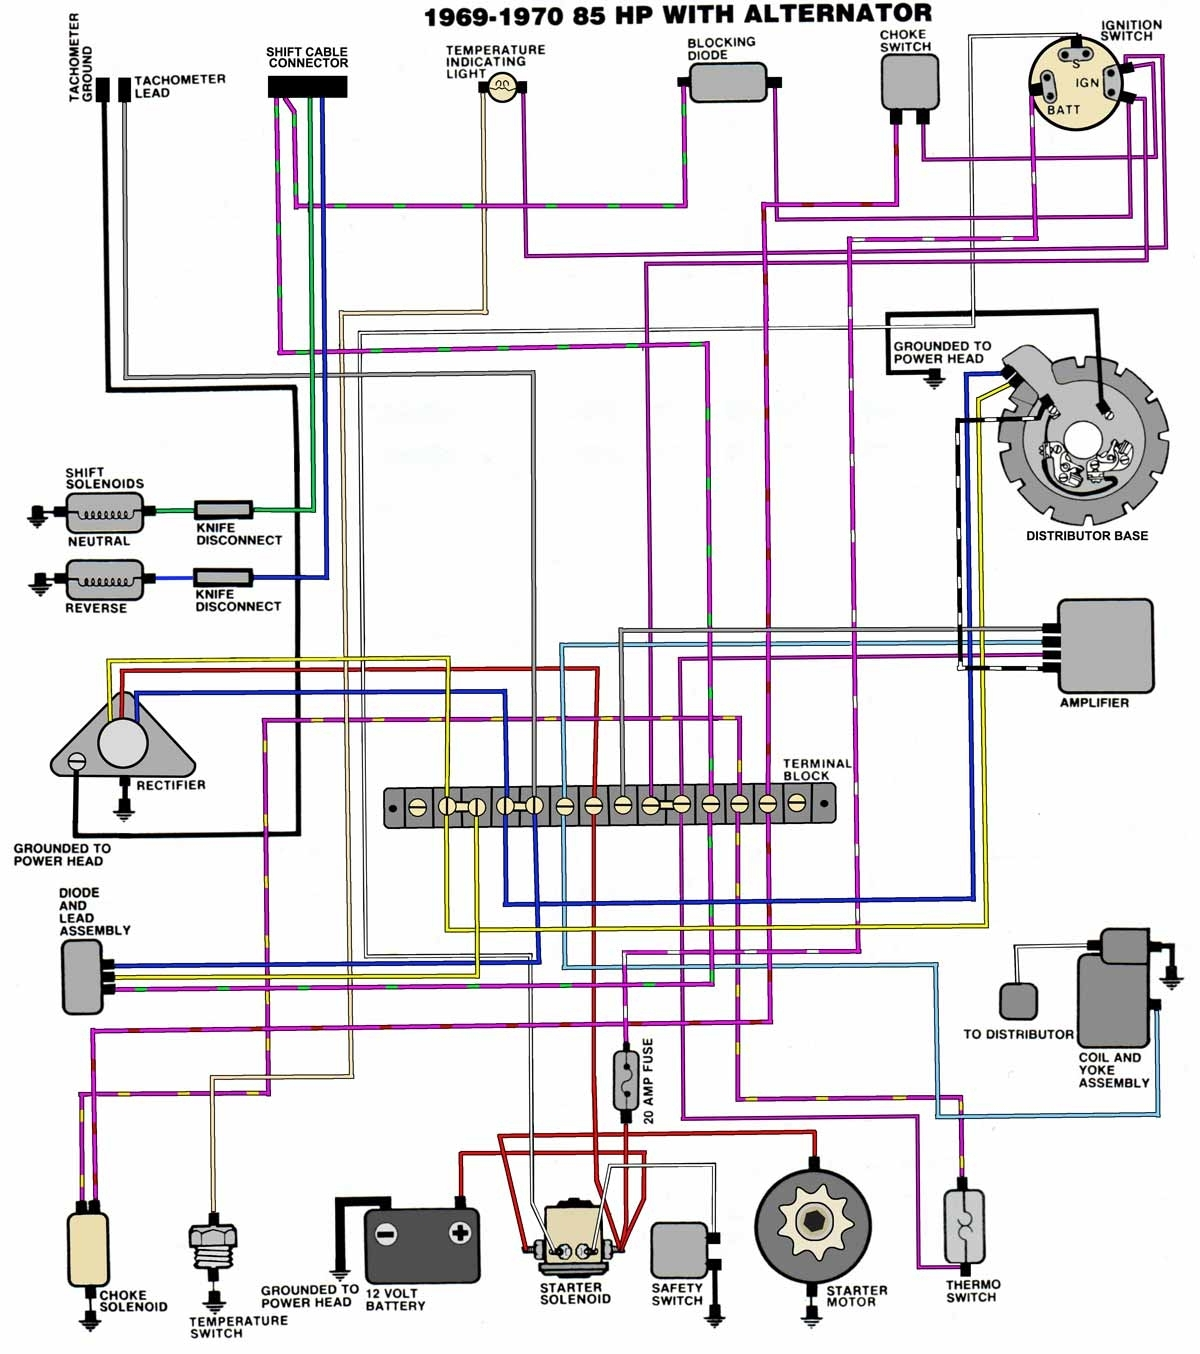 evinrude wiring diagram outboards to 77 78 55hp wiring diagram within 76 evinrude wiring diagram mercury 1985 wire diagrams wiring diagrams mercury ignition switch wiring diagram at n-0.co